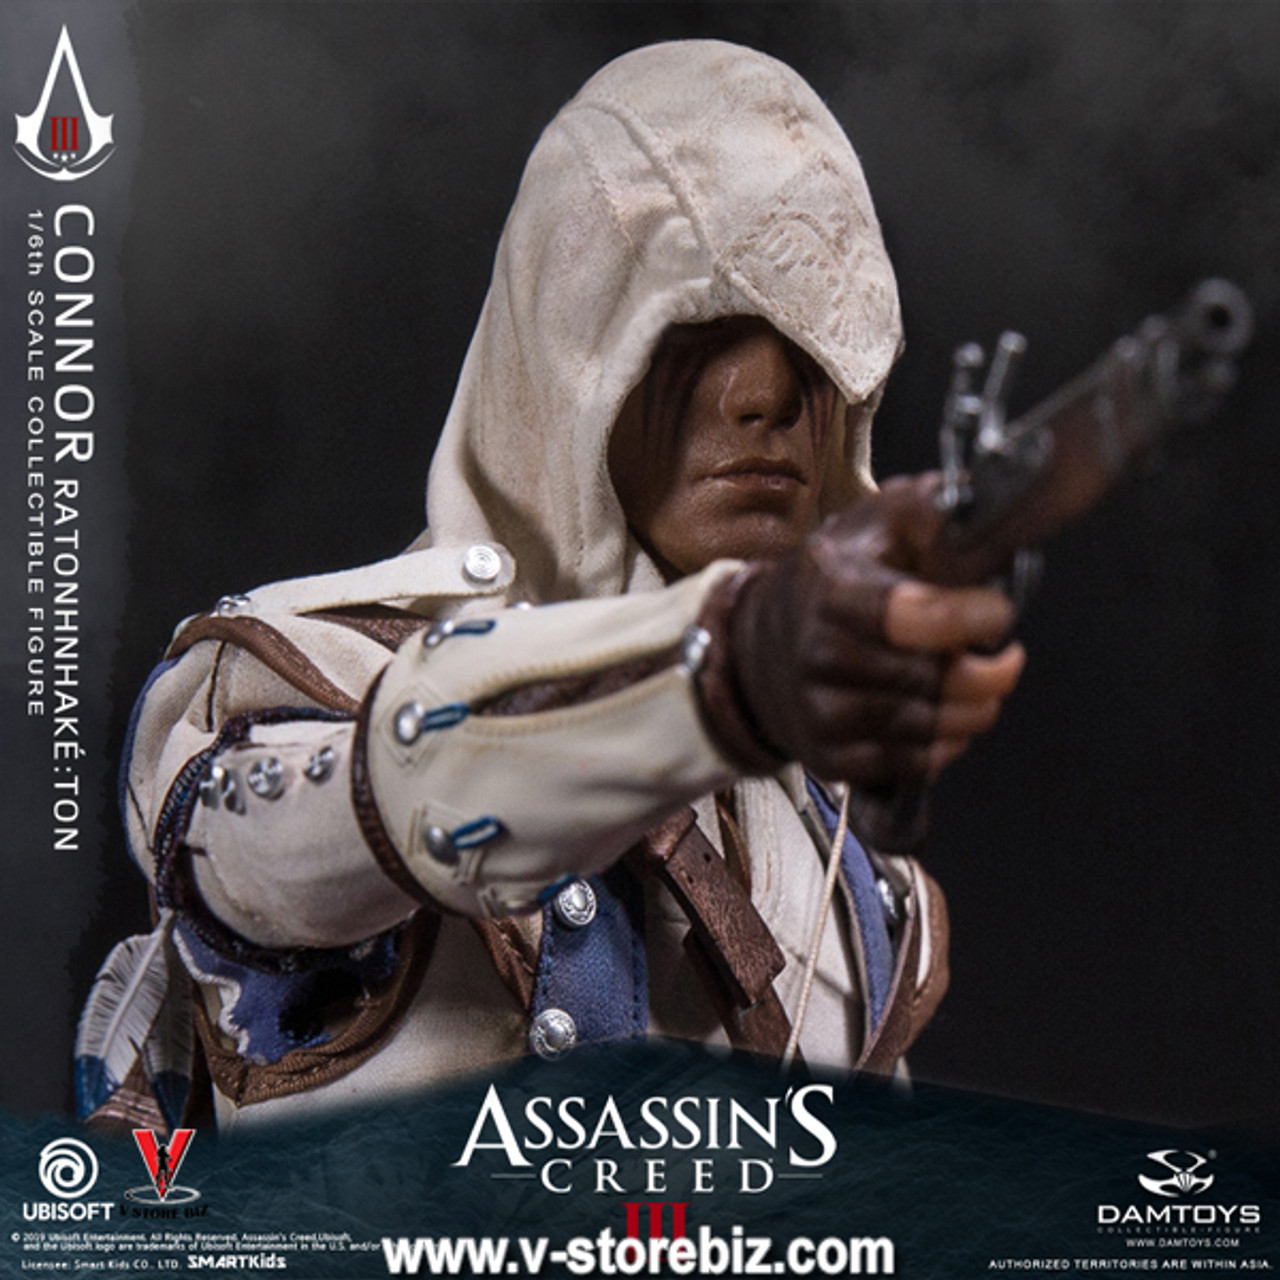 Damtoys Dms010 Assassin S Creed Iii Connor V Store Collectibles